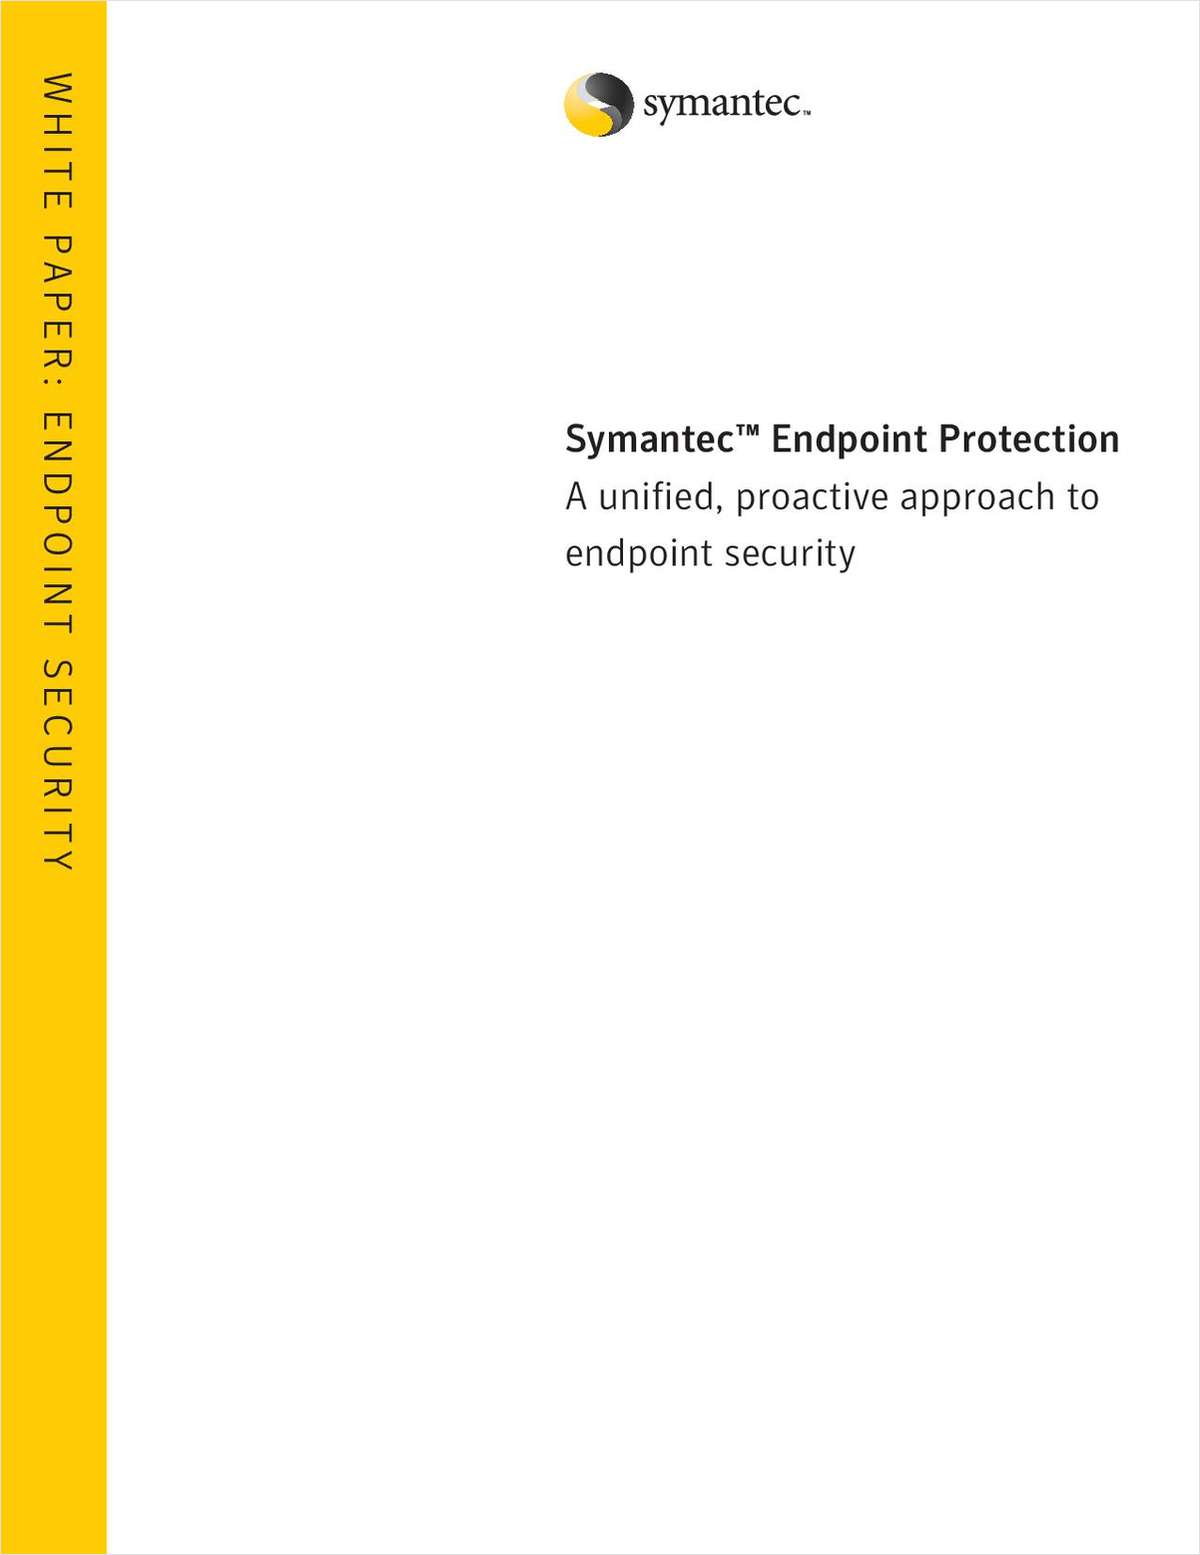 Symantec™ Endpoint Protection: A Unified, Proactive Approach to Endpoint Security